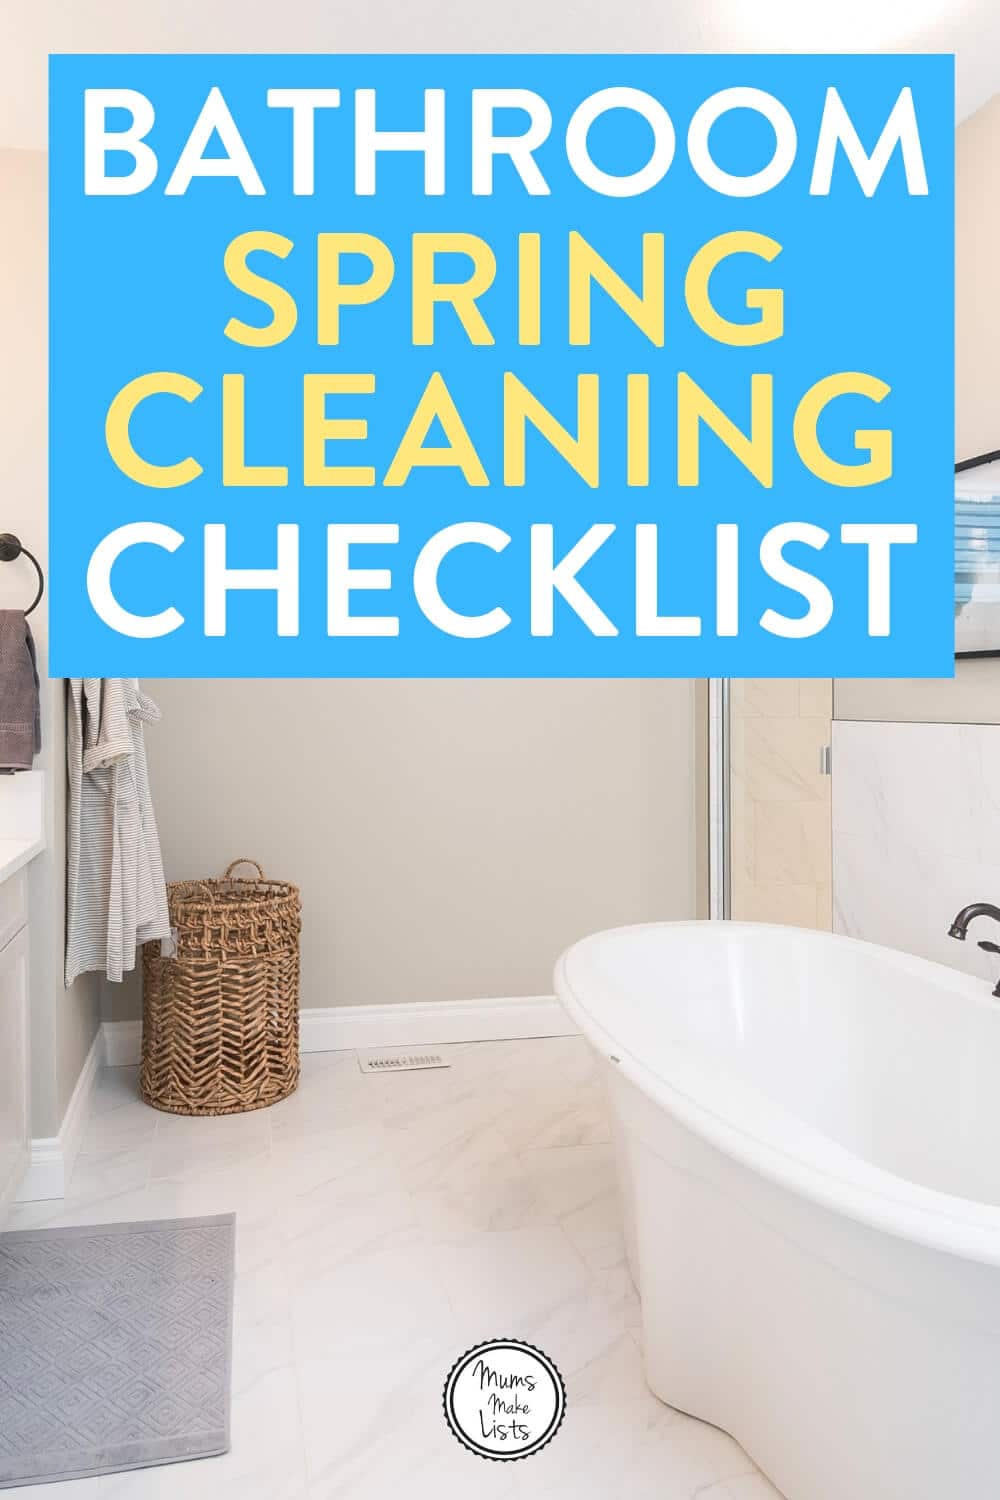 bathroom spring cleaning, bathroom spring cleaning checklist, spring cleaning checklist, spring clean, spring cleaning